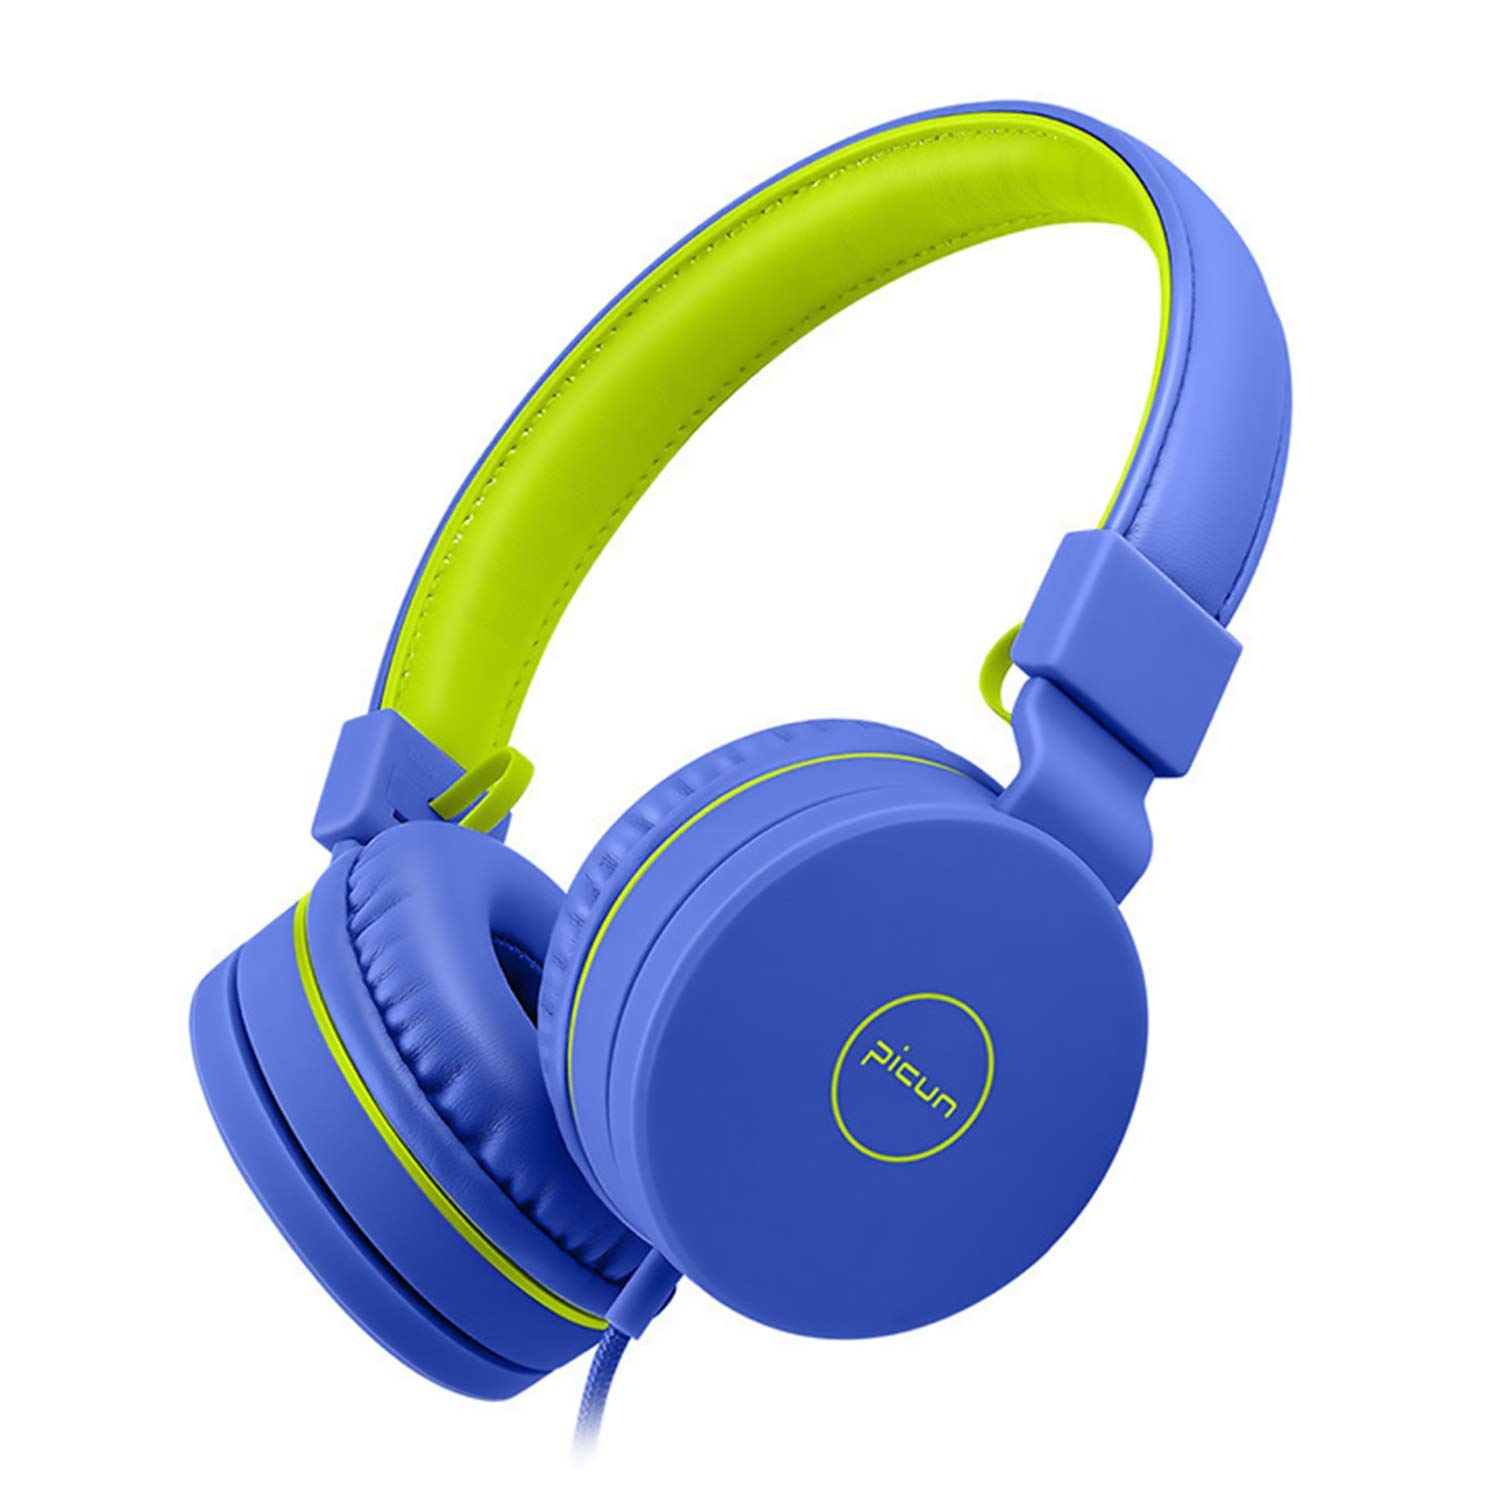 Arkimd Kids Headphones, 85dB Volume Limiting Hearing Protection - with Microphone - Wired Children Foldable On Ear Headphones for Boys Girls Teens School (Blue)